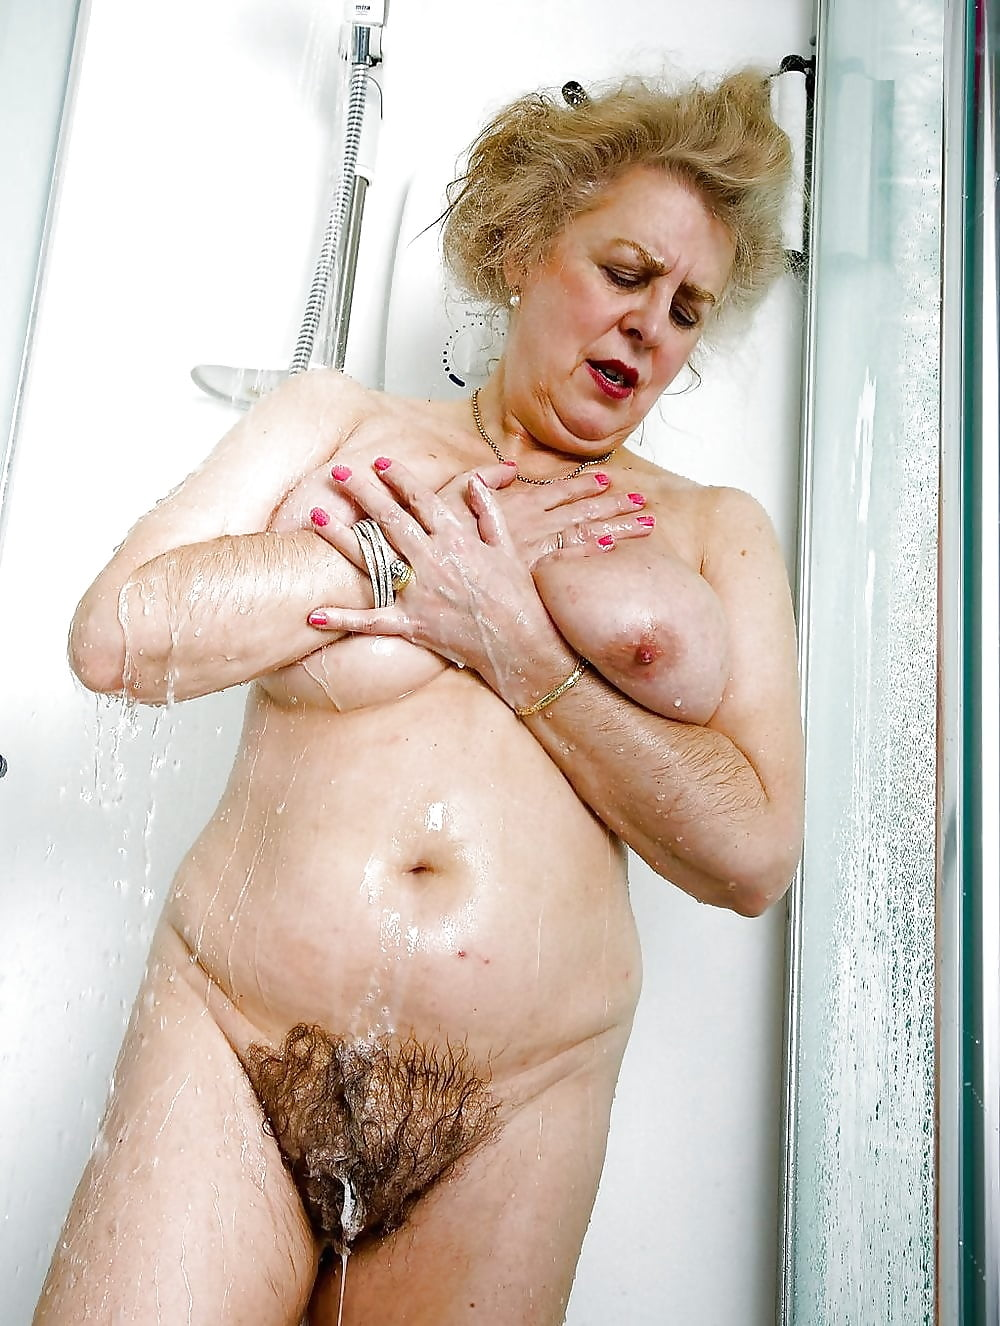 Old hairy granny pussy cumming